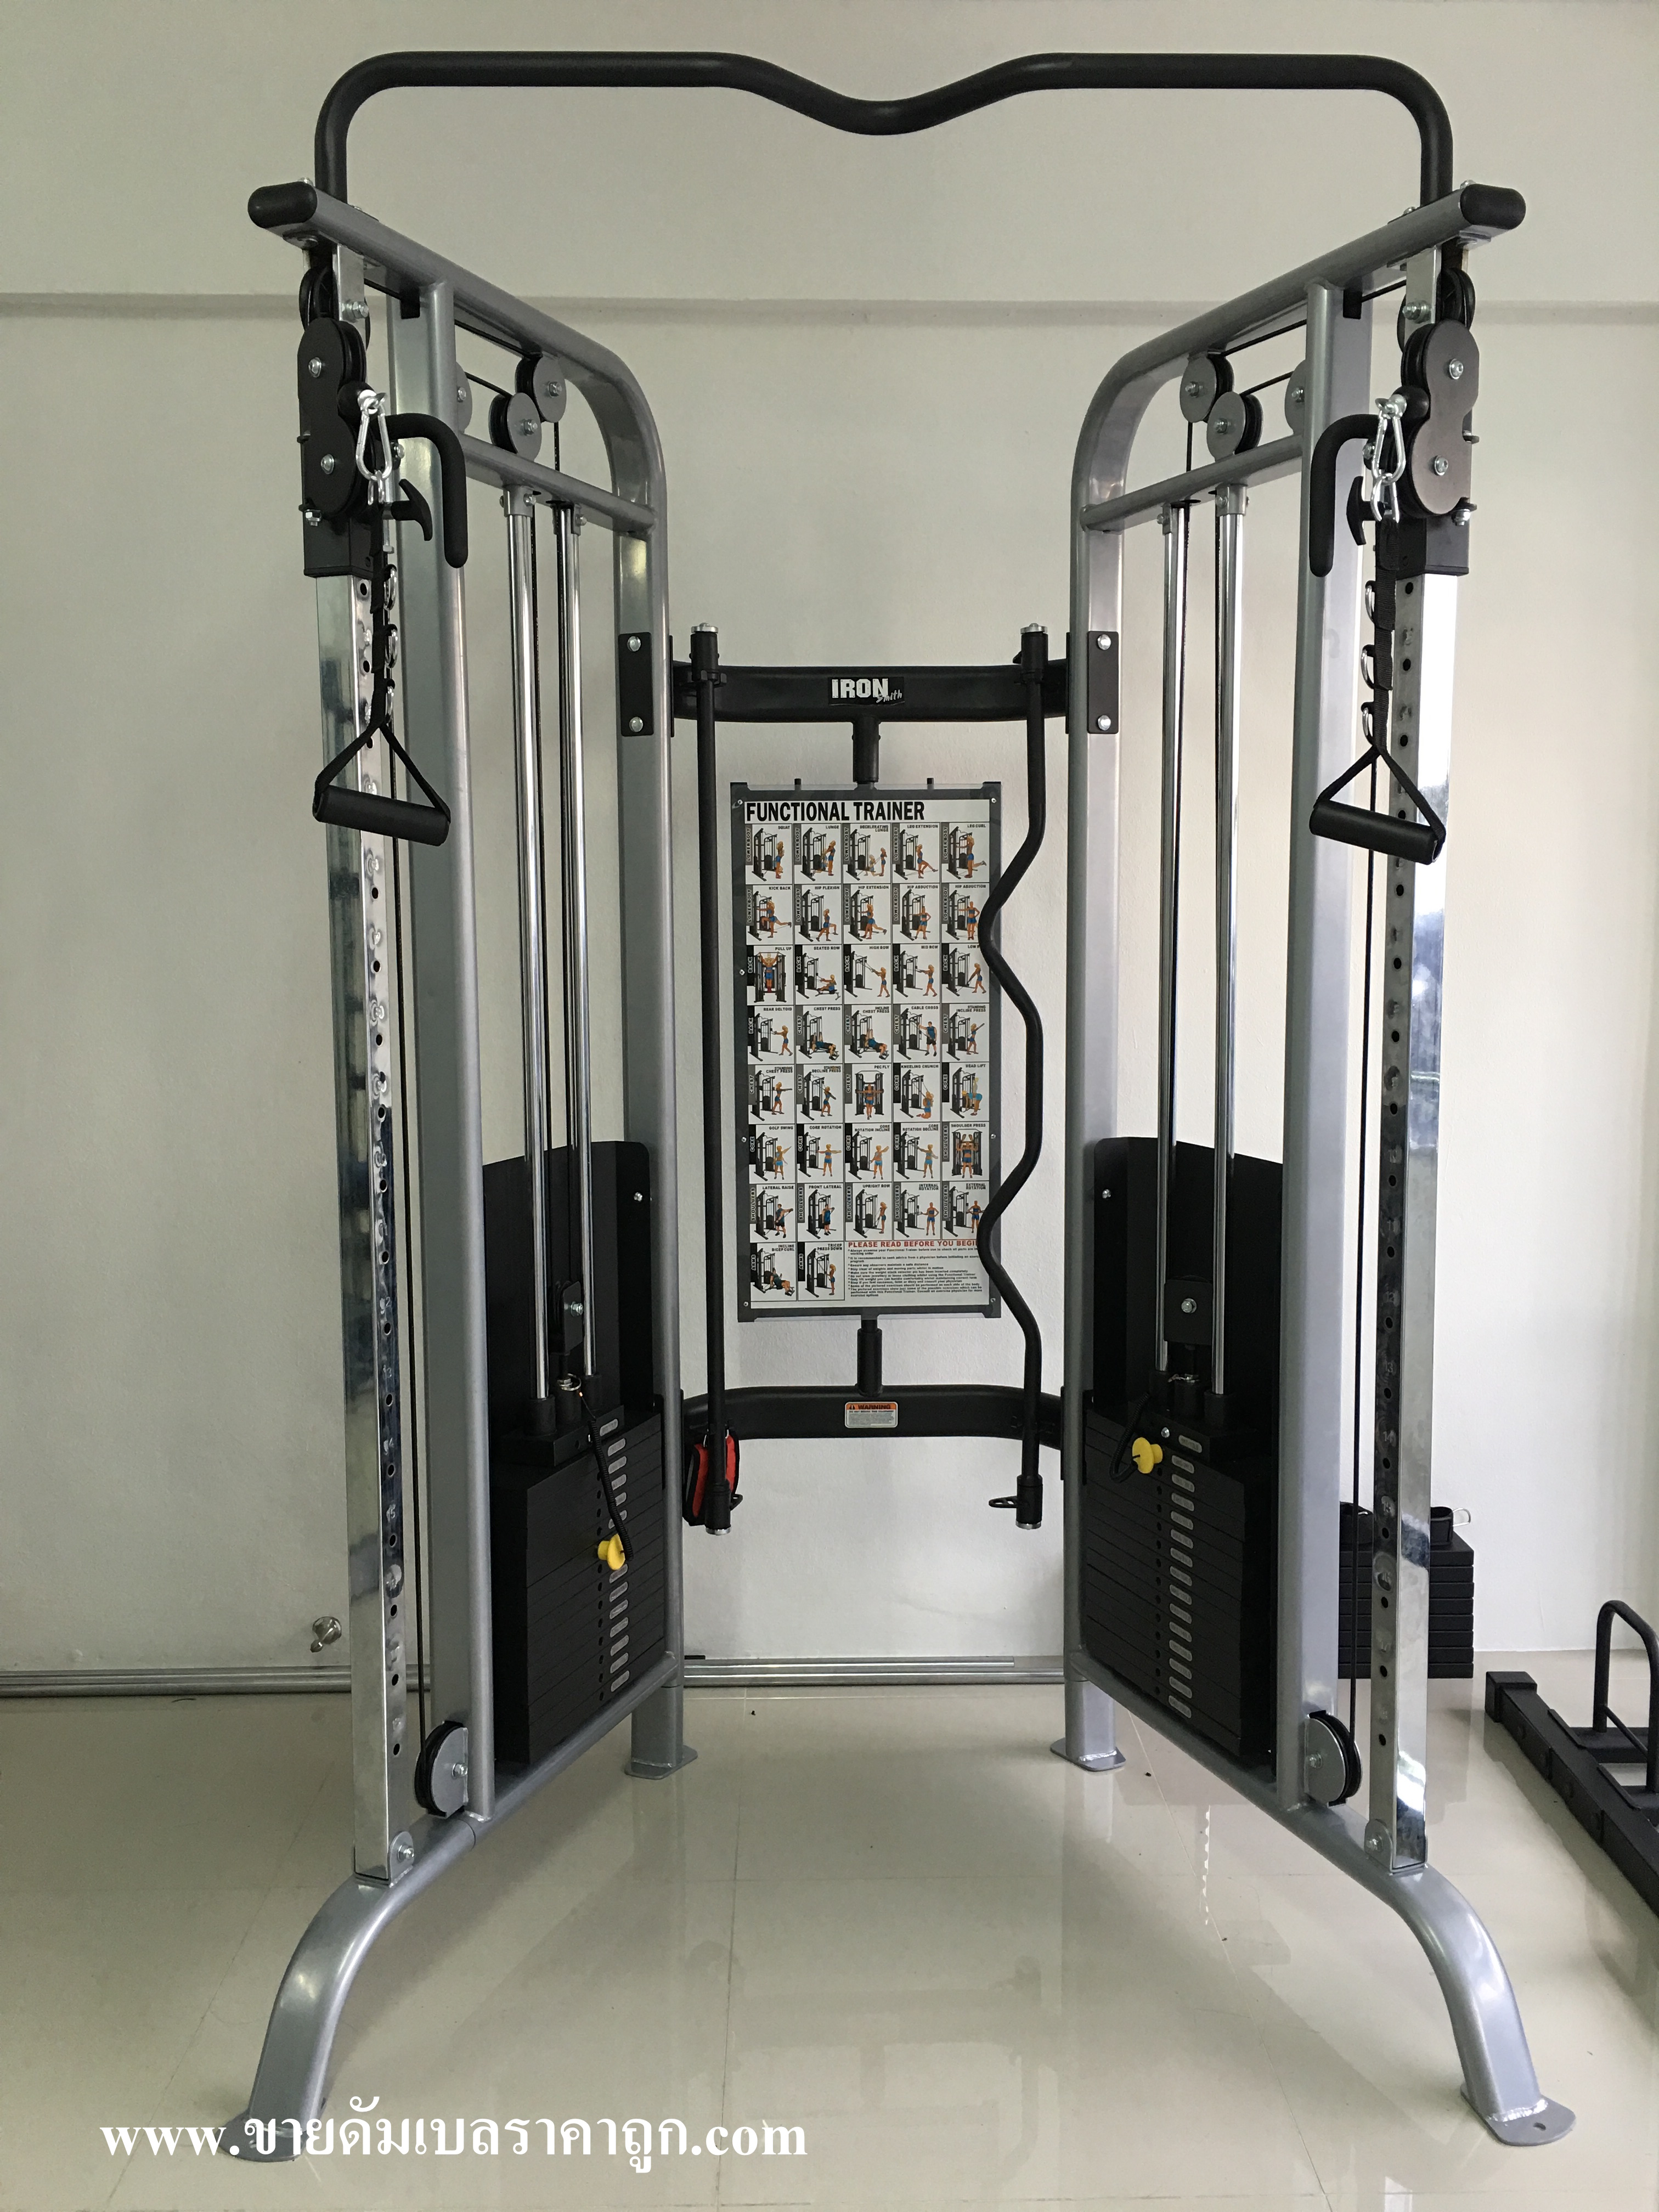 Cable cross over : functional trainer